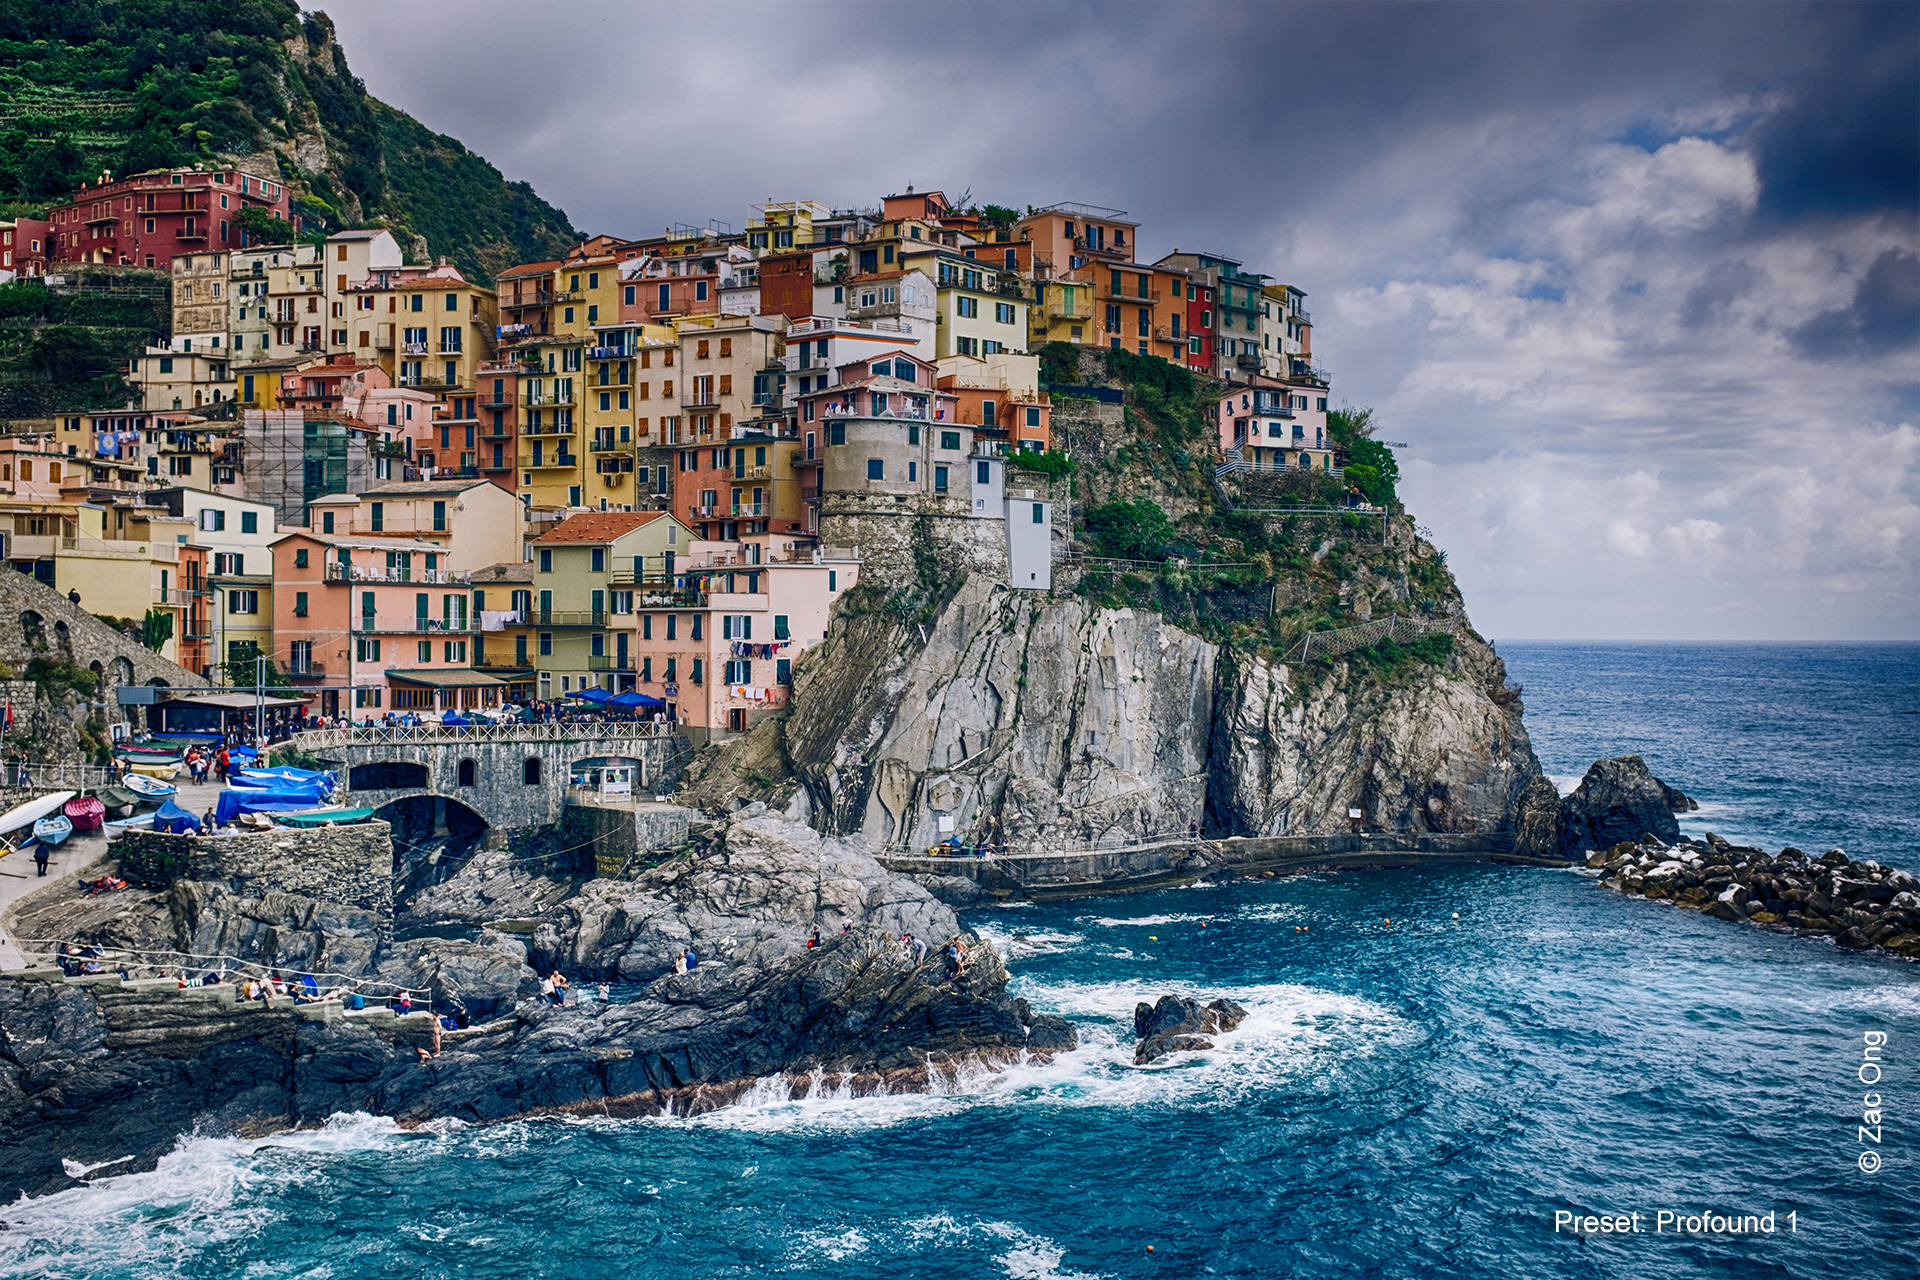 hdr efex pro nik collection by dxo